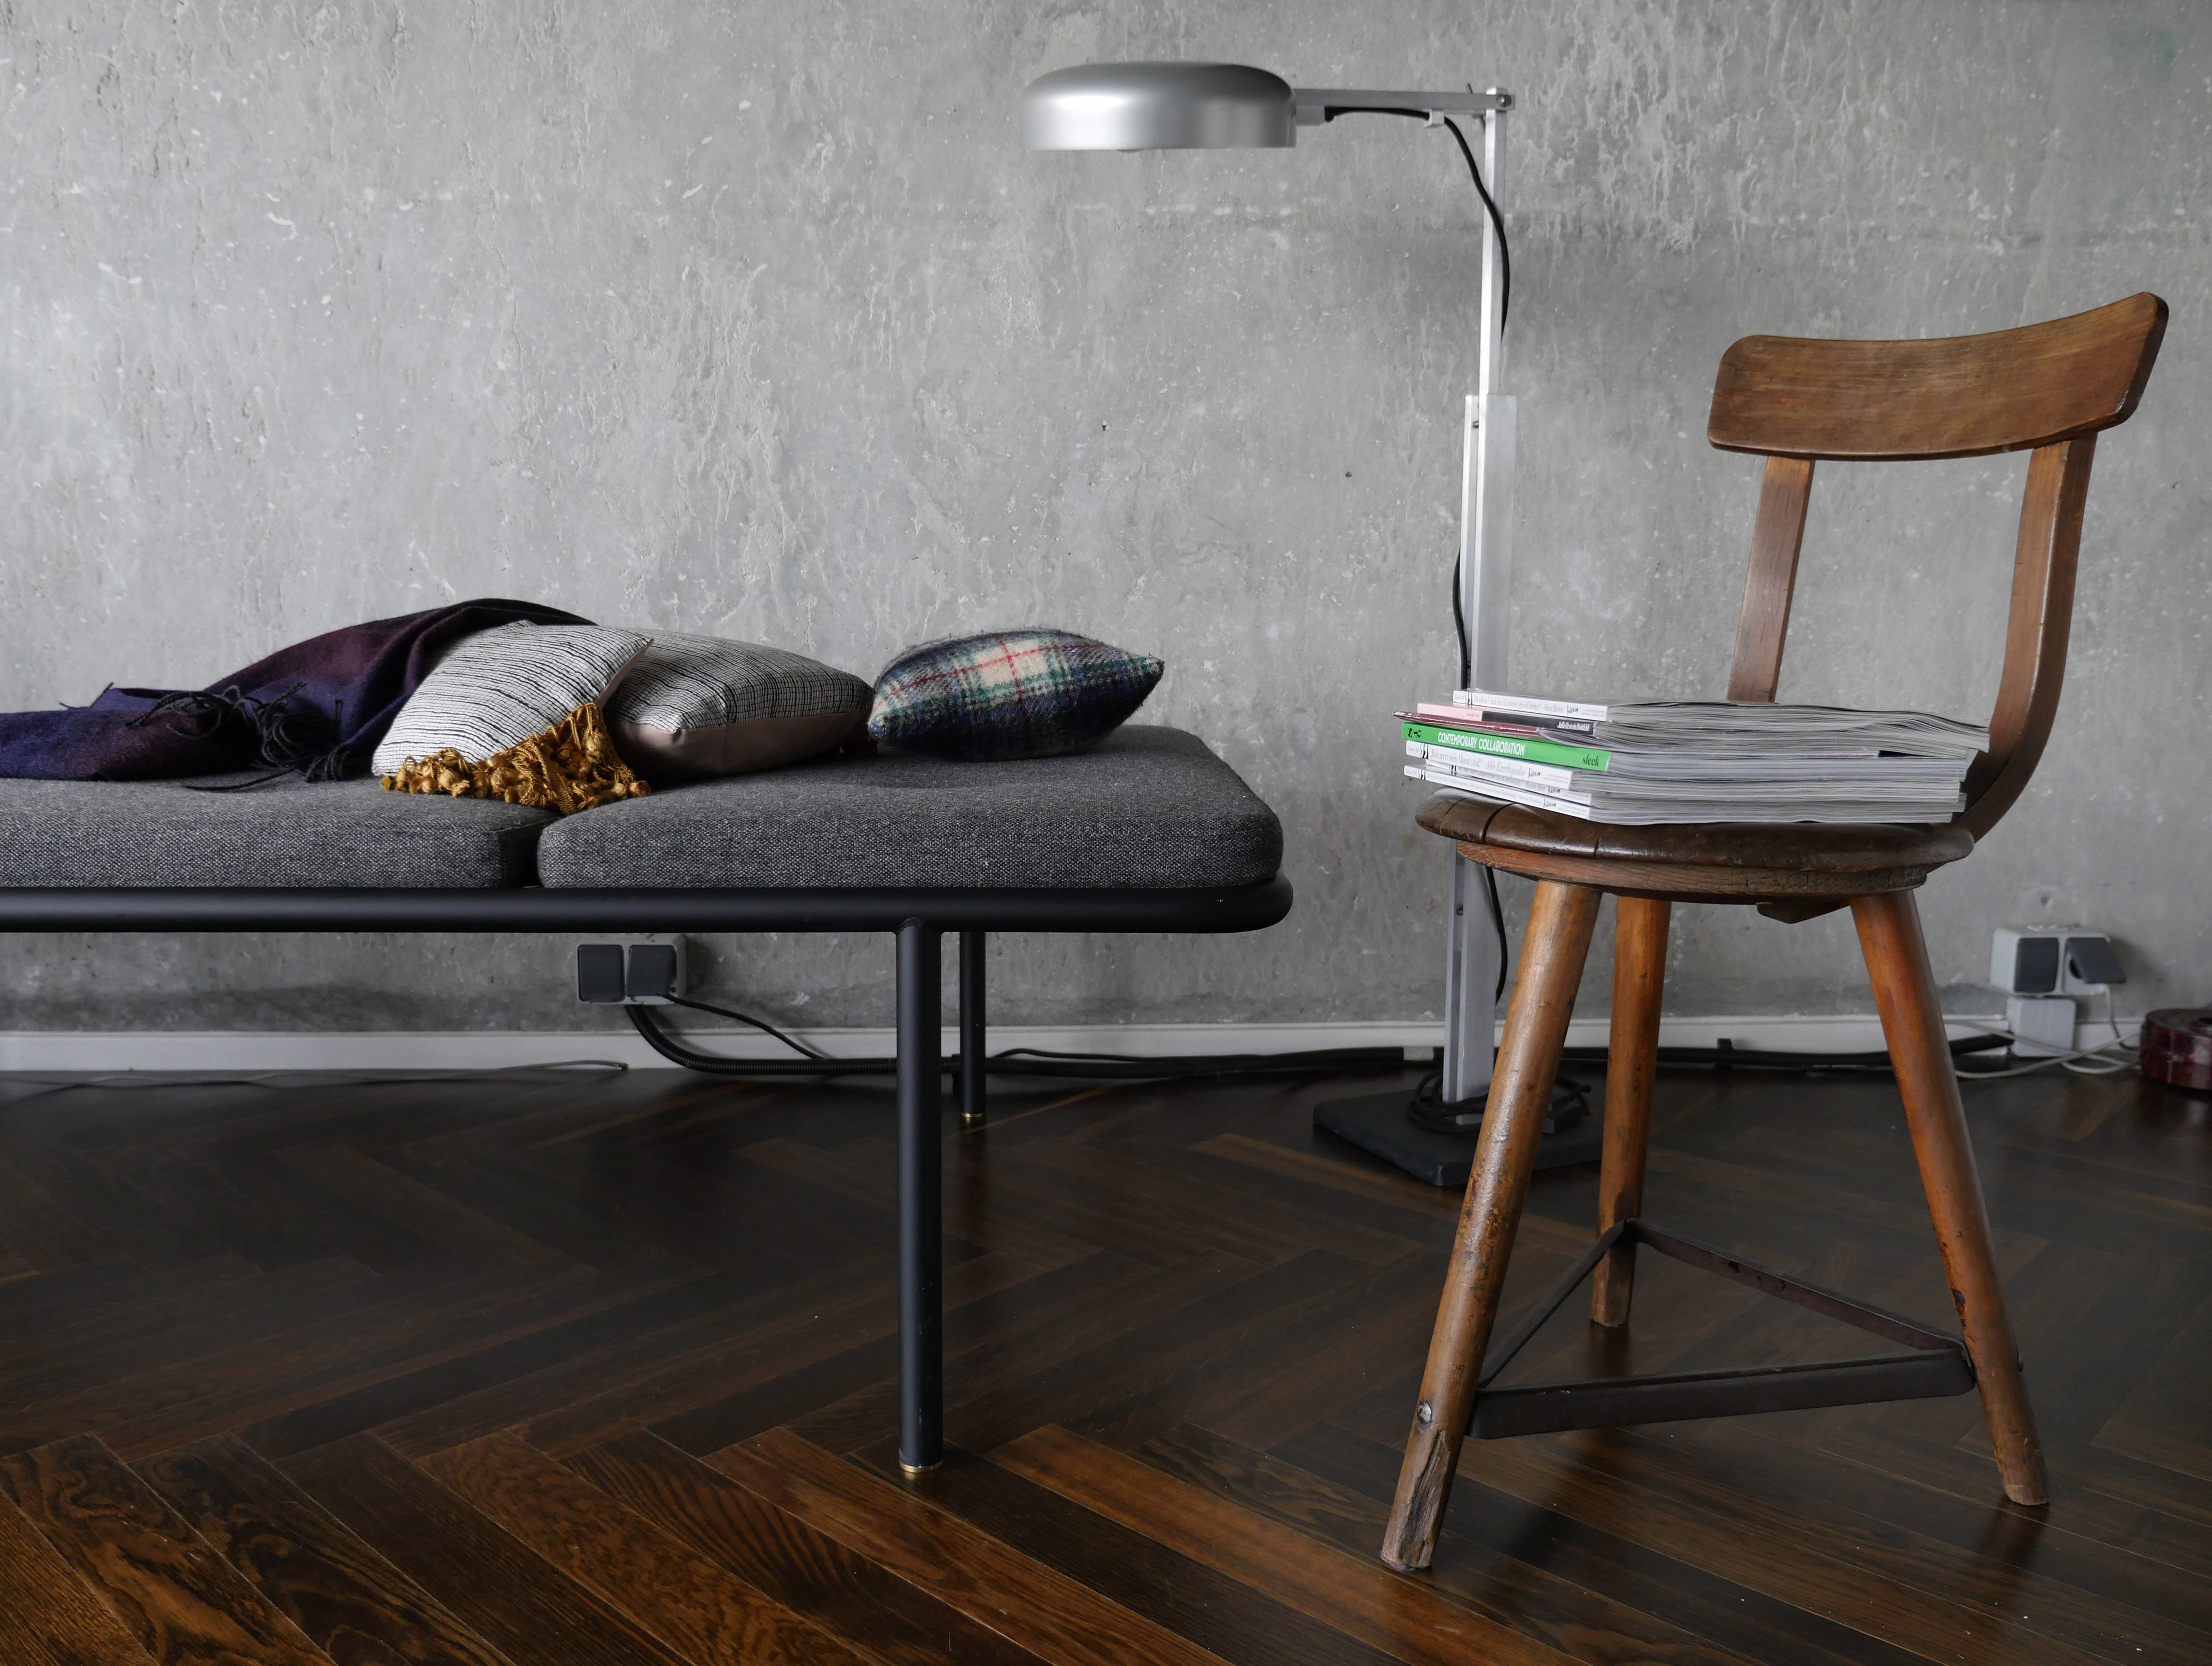 Daybed,simple, clear and timeless, the tubular steel frame is secure and robust on 4 legs.